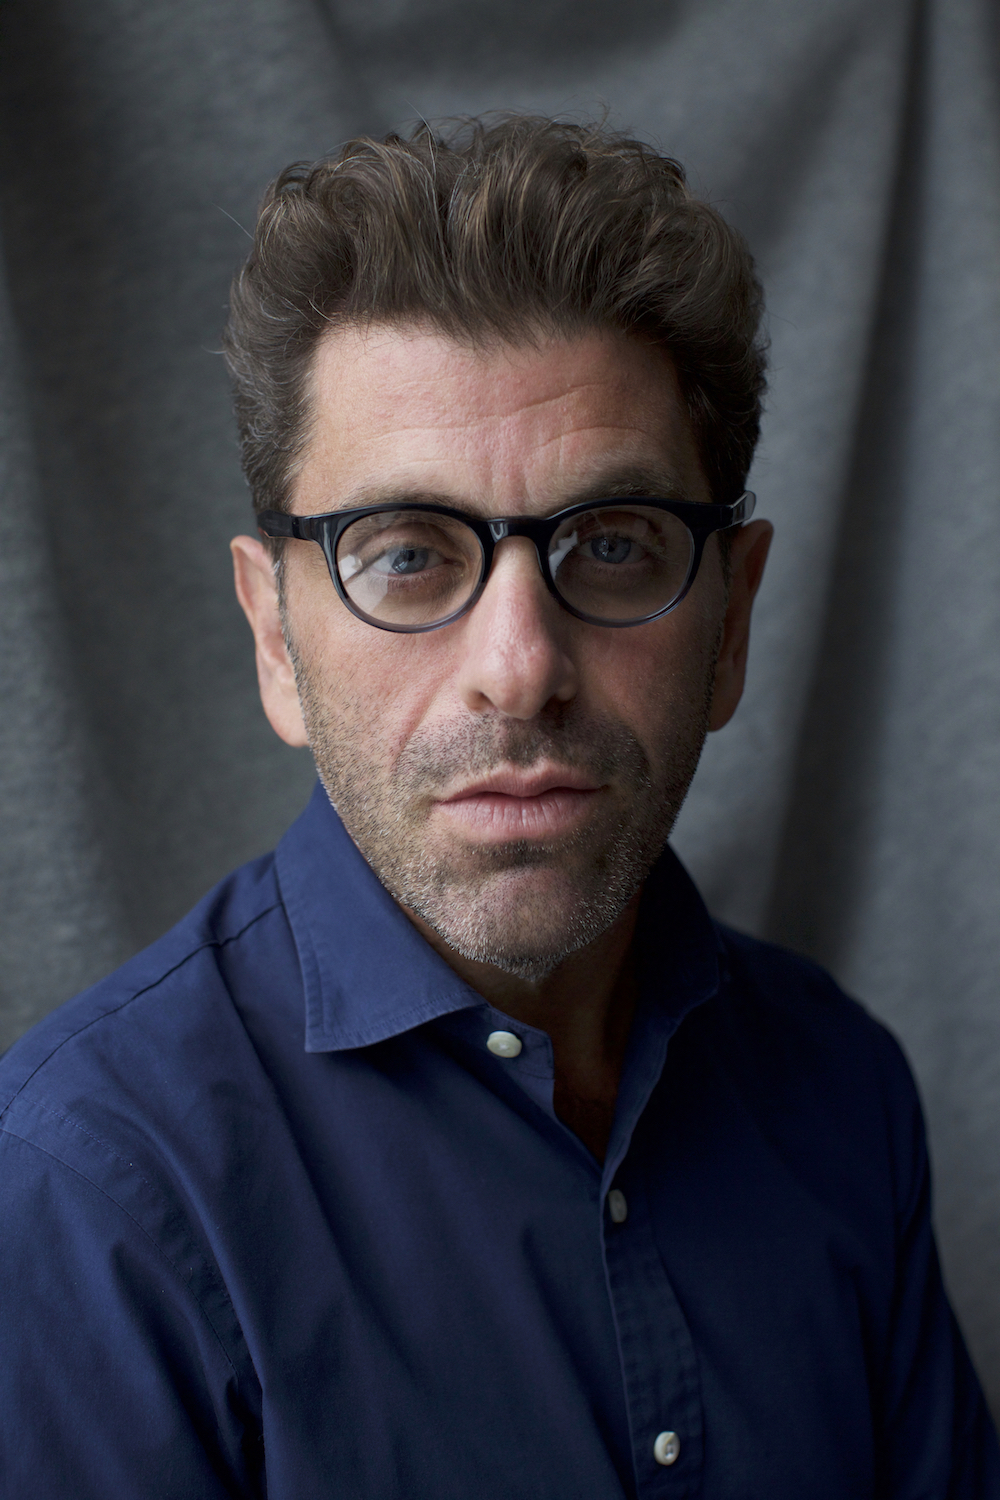 Eugene Jarecki - Eugene Jarecki is an Emmy and Peabody award-winning director of dramatic and documentary subjects who has twice won the Grand Jury Prize at the Sundance Film Festival, first in 2005 for Why We Fight (2005) and again in 2012 for The House I Live In(2012)A public intellectual on domestic and international affairs, Jarecki has been named a Soros Justice Fellow at the Open Society Institute and a Senior Fellow at Brown University's Watson Institute for International Studies. He has appeared on 'The Daily Show with Jon Stewart', 'Charlie Rose', 'The Colbert Report', 'FOX News', CNN, and many other outlets, while also being featured in the New York Times, the Washington Post, the Financial Times, the New Yorker, Vanity Fair, and GQ, among others. As founder and executive director of The Eisenhower Project, a public policy group dedicated to promoting greater public understanding of the forces that shape U.S. foreign and defense policy, he published the 2008 book 'The American Way of War: Guided Missiles, Misguided Men, and a Republic in Peril' (Simon & Schuster). He is also the creator of 'Move Your Money', an online video that sparked a national movement in 2010 to shift personal banking away from